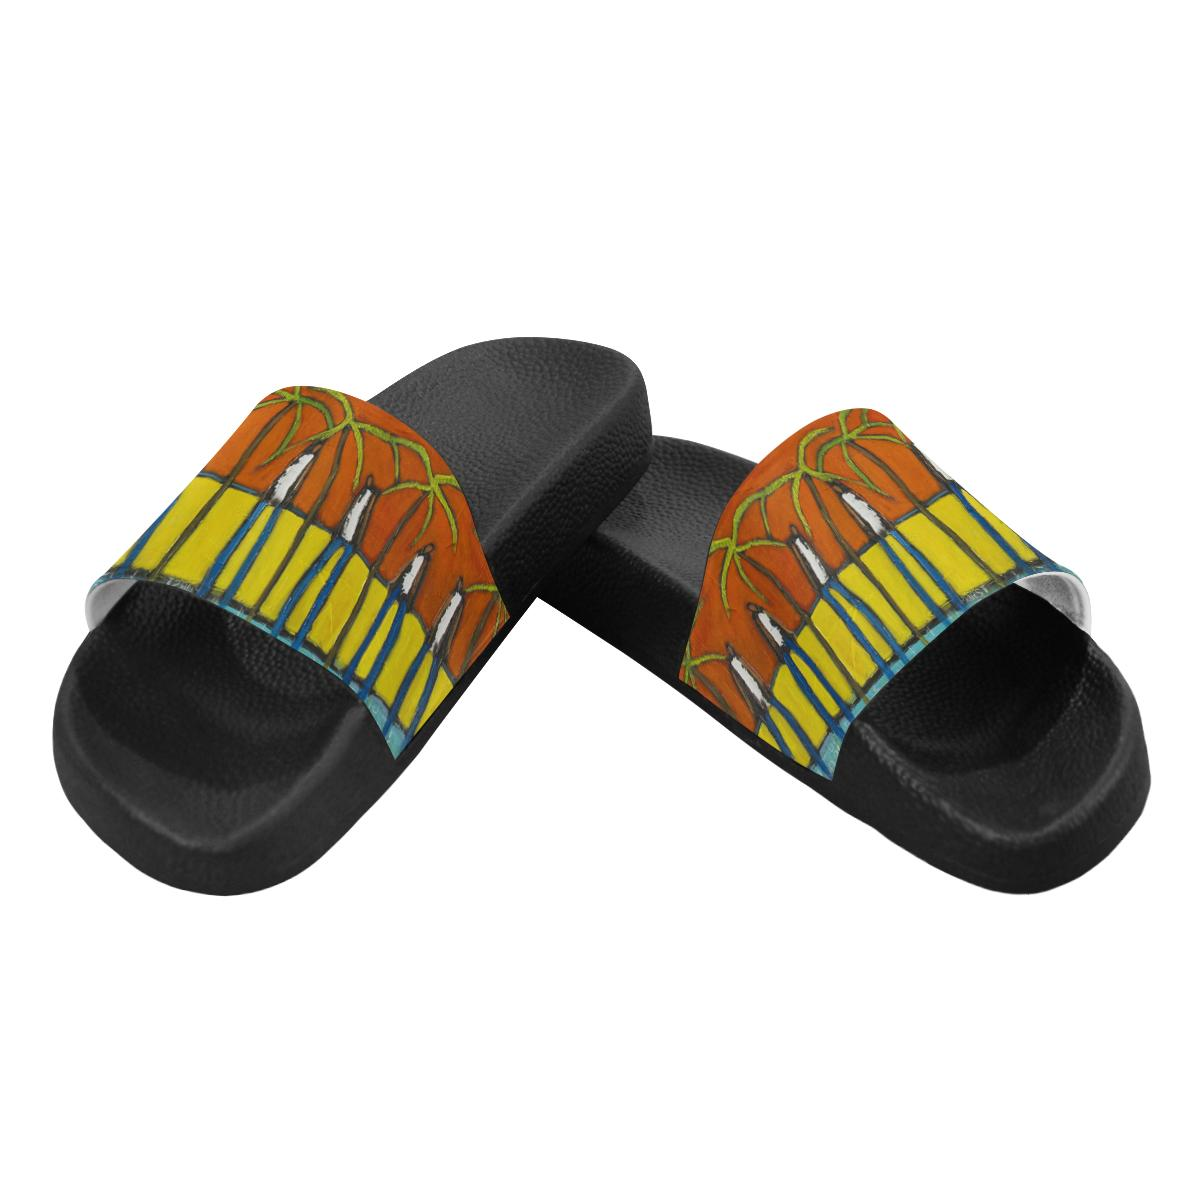 Flip Flops A Day In Paradise Men's Slide Sandals